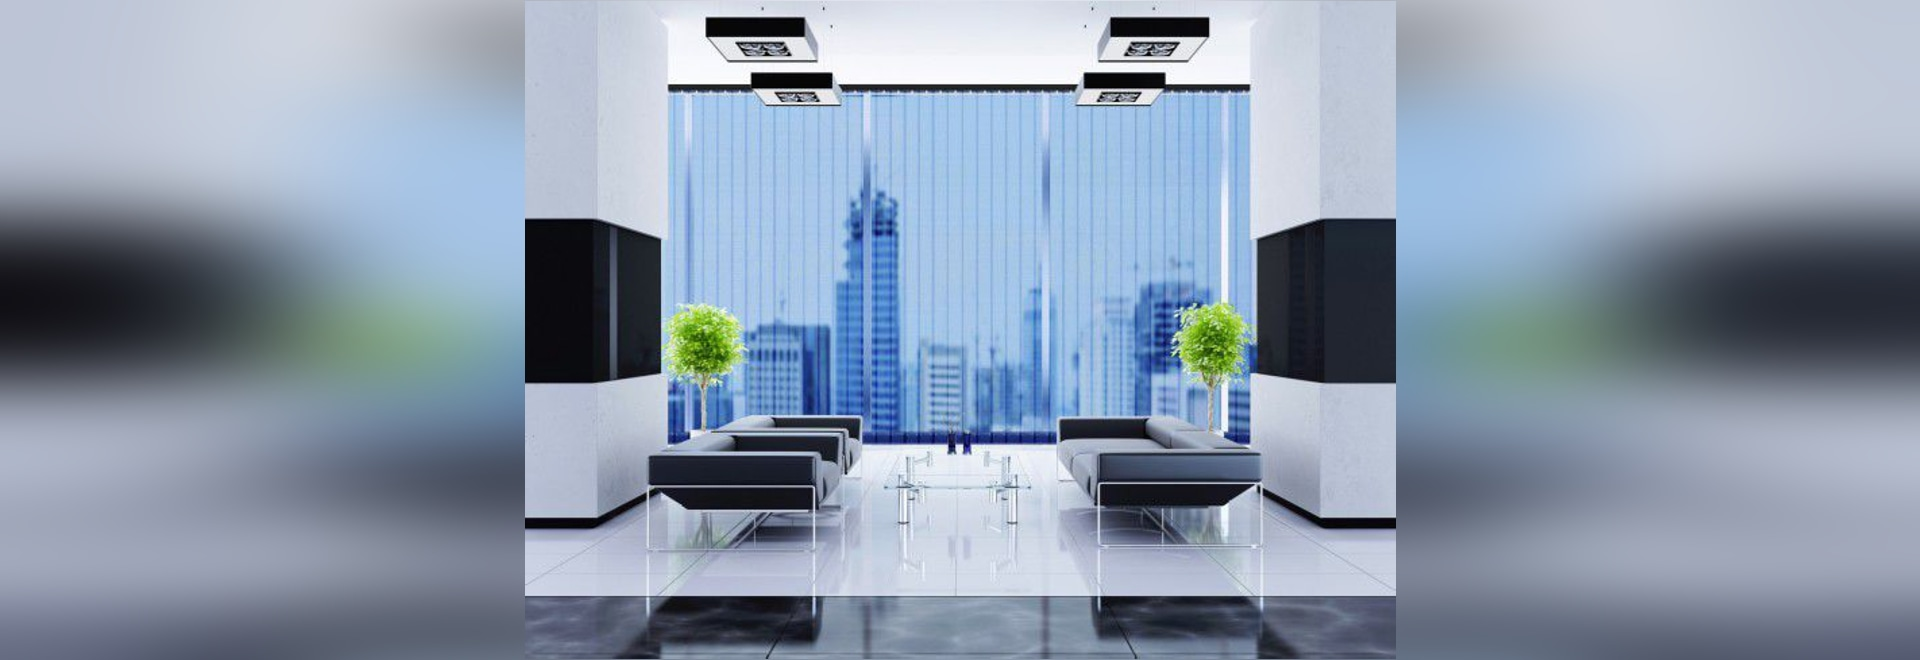 NEW: vertical blinds by SolarScreen International